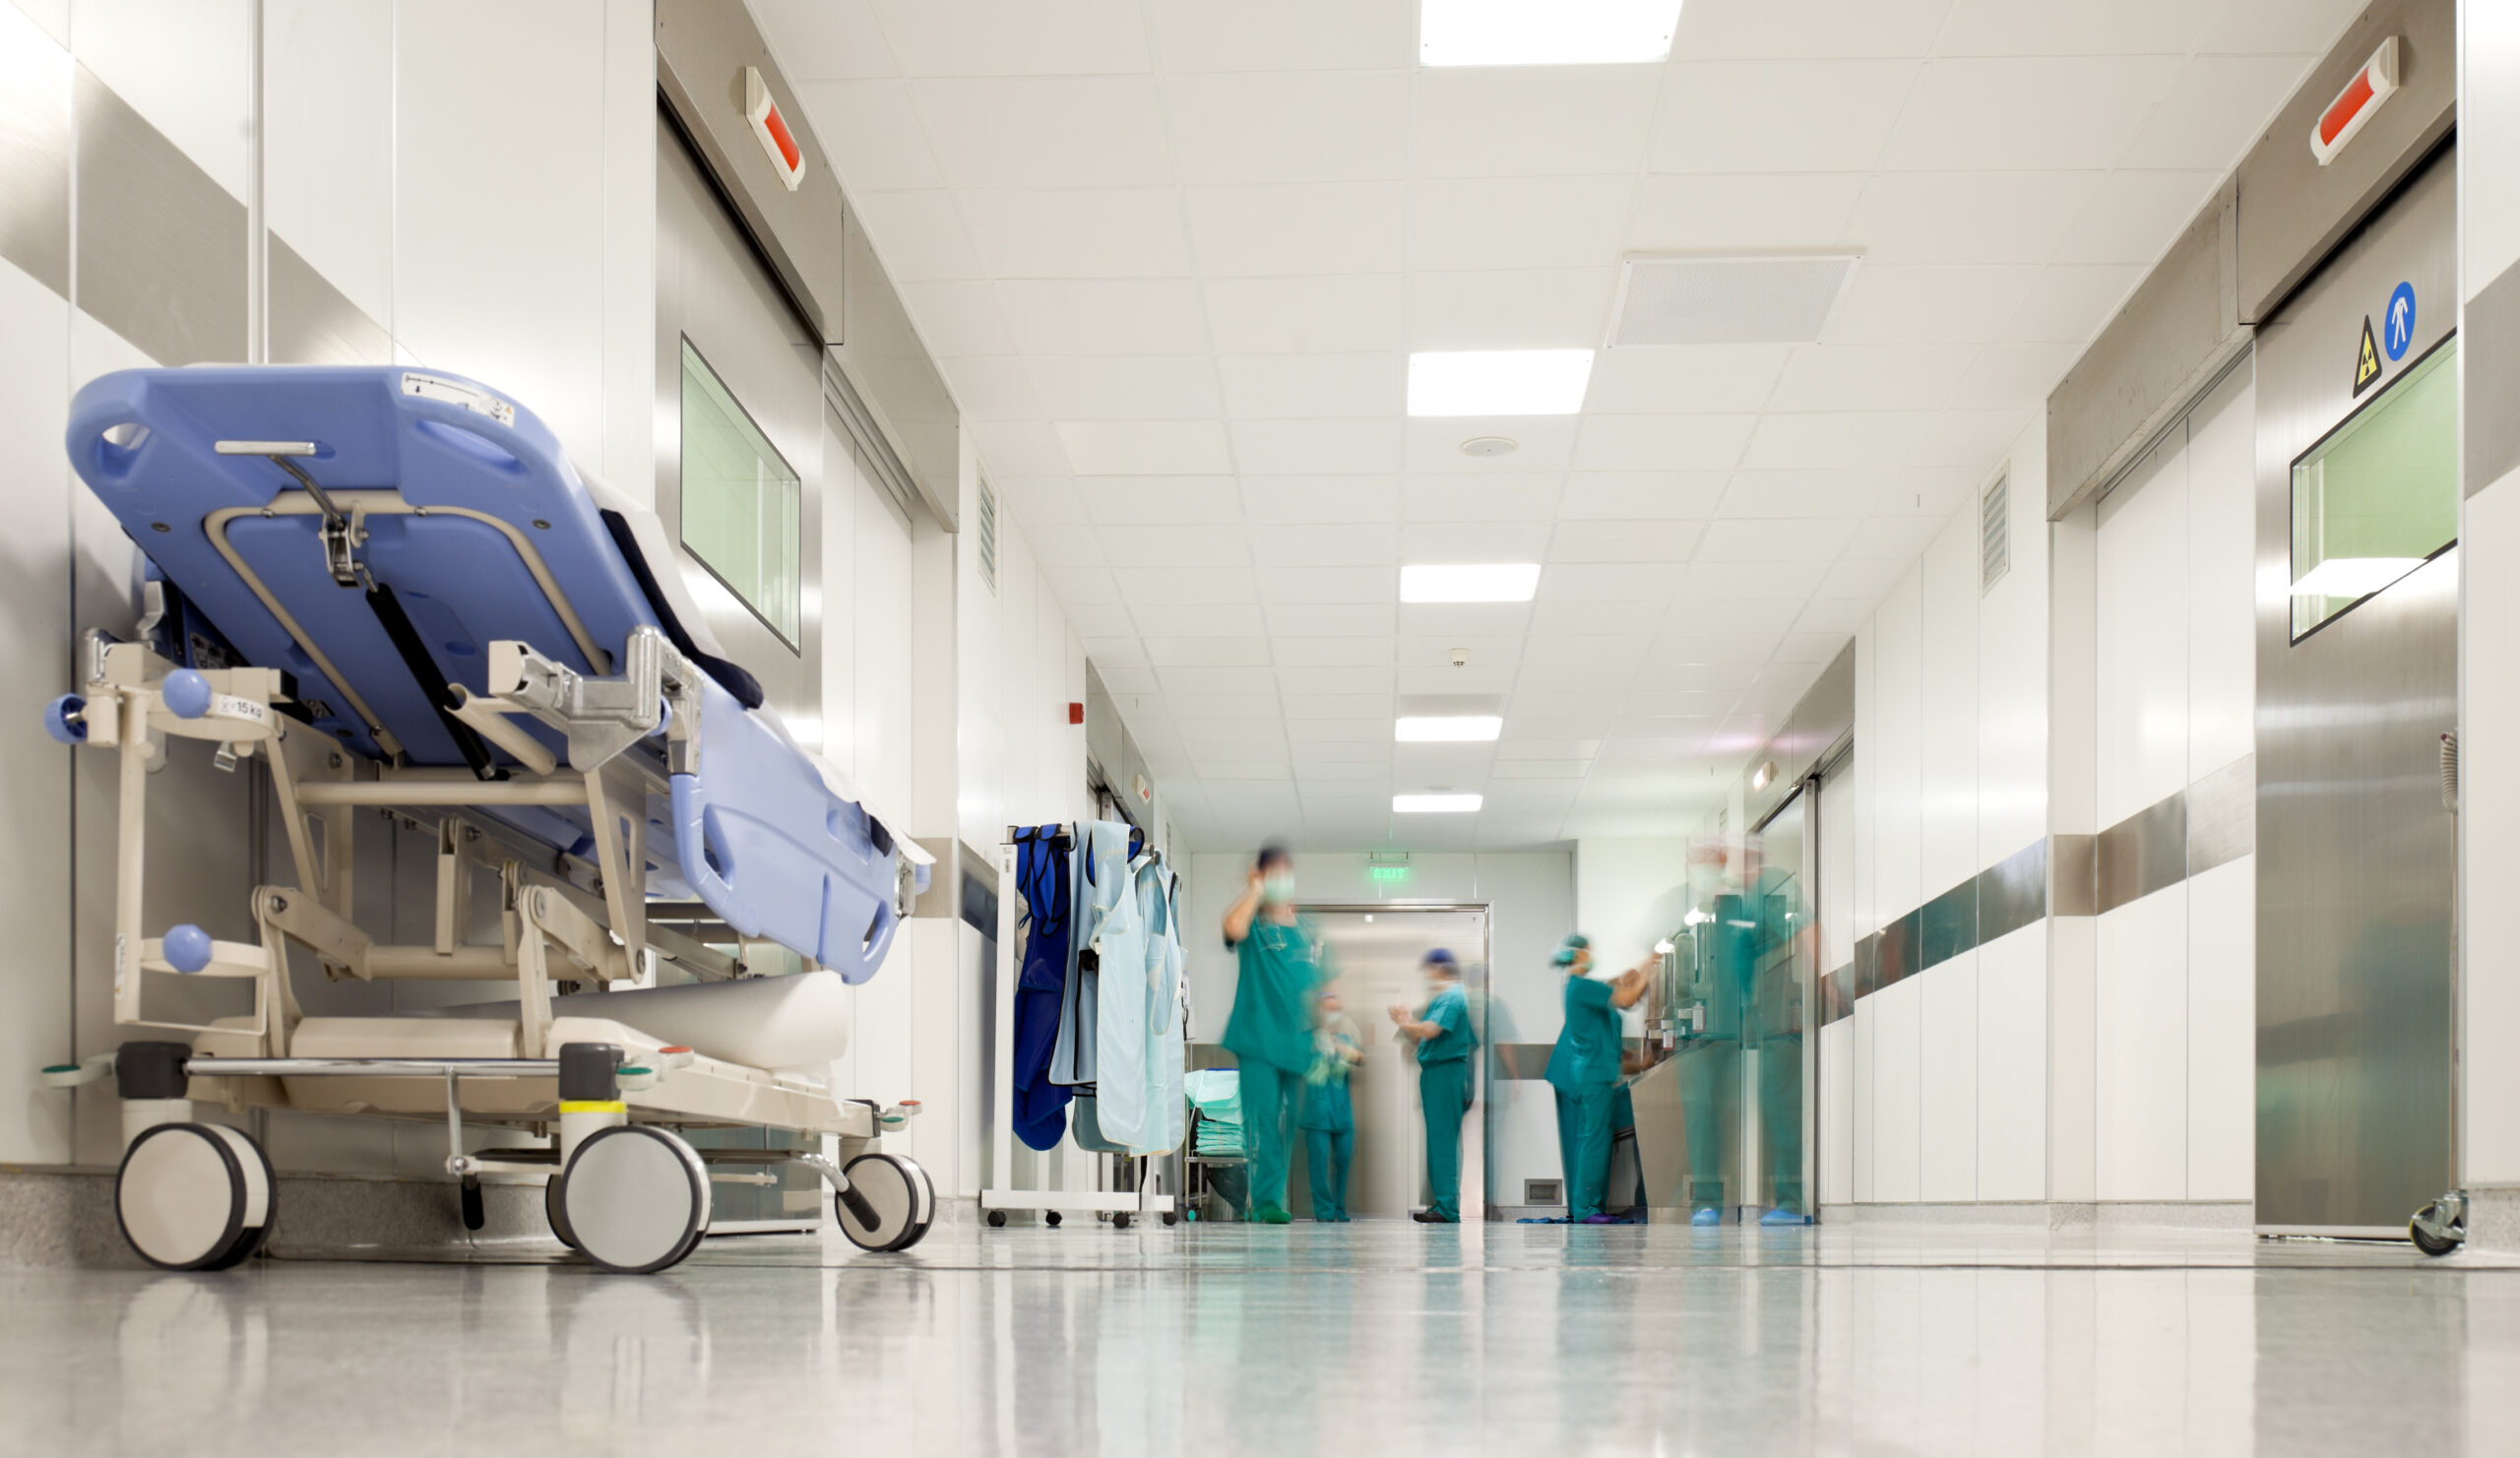 People with medical uniforms in hospital corridor